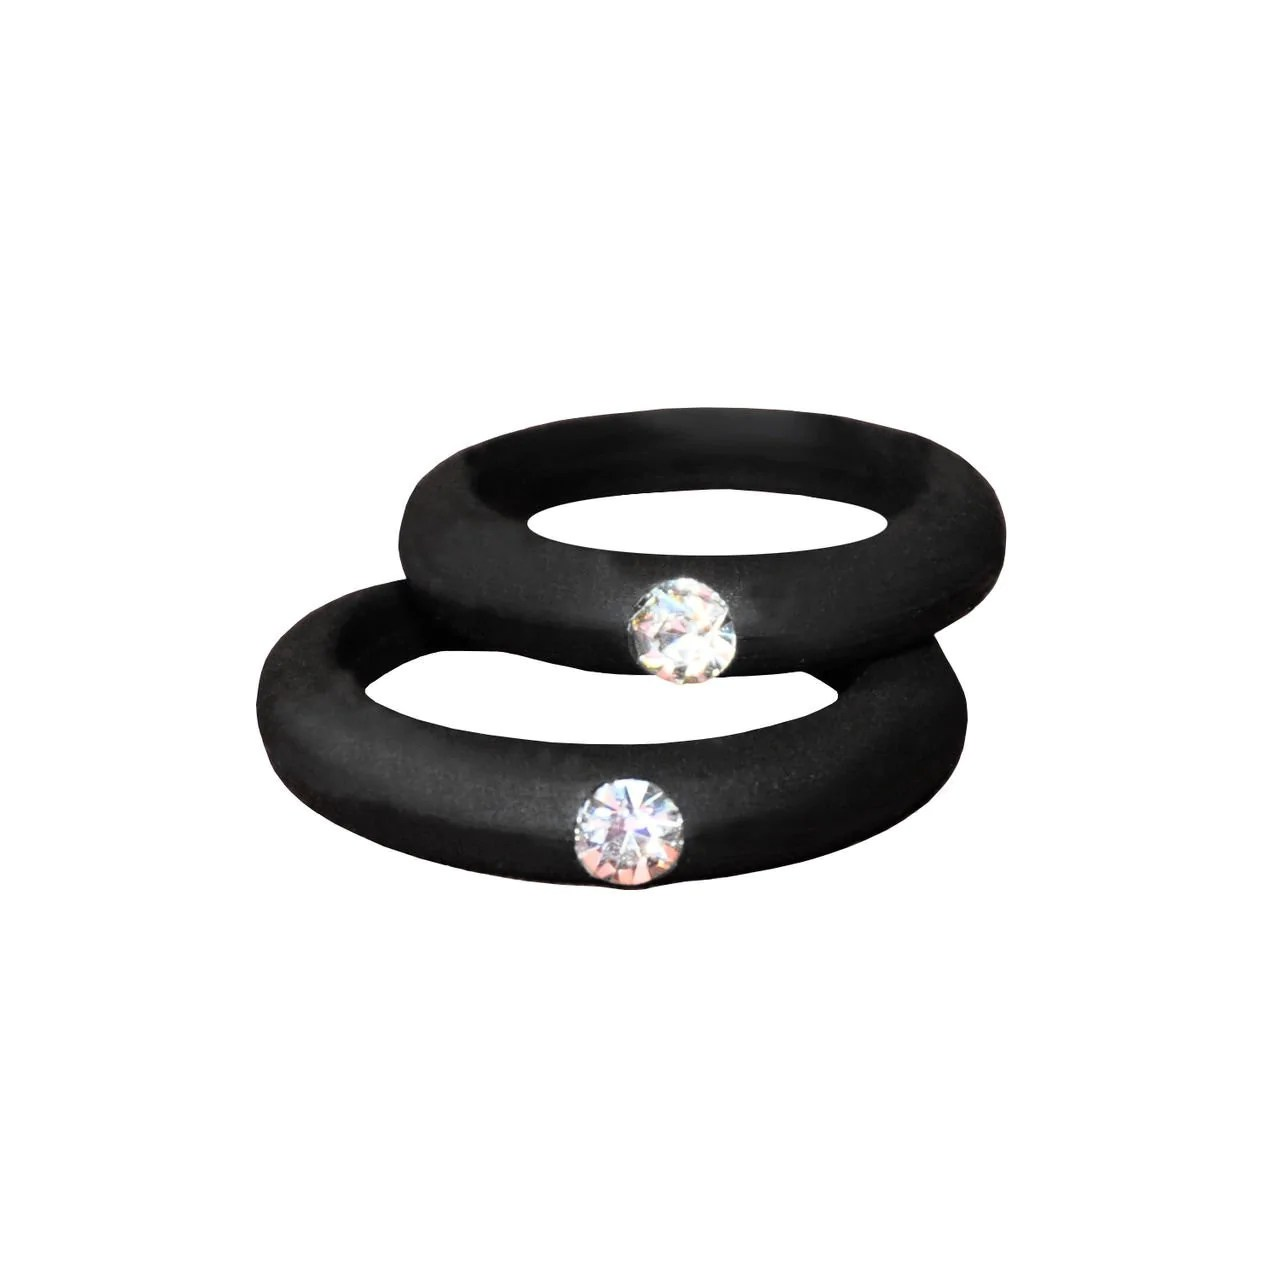 Rhinestone Silicone Rings 2 Pack Includes Both Sizes